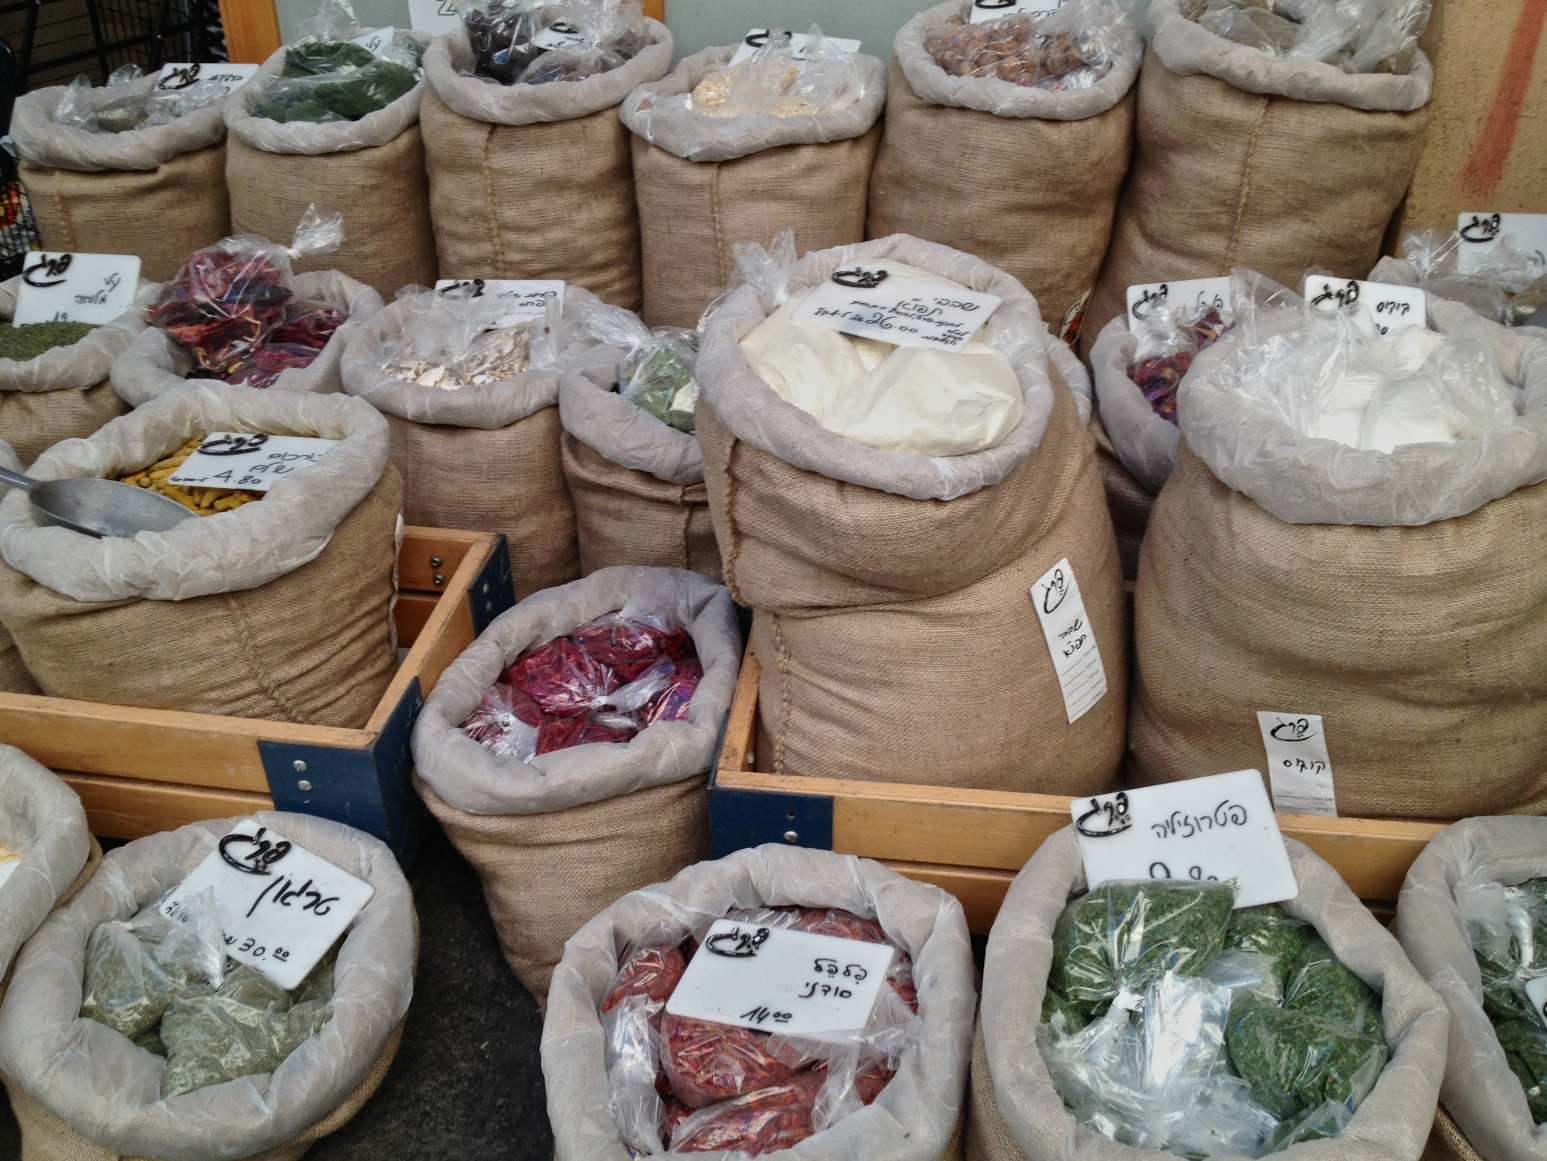 Spice Market in Nablus. (With images)   Palestine   Middle East Spice Market